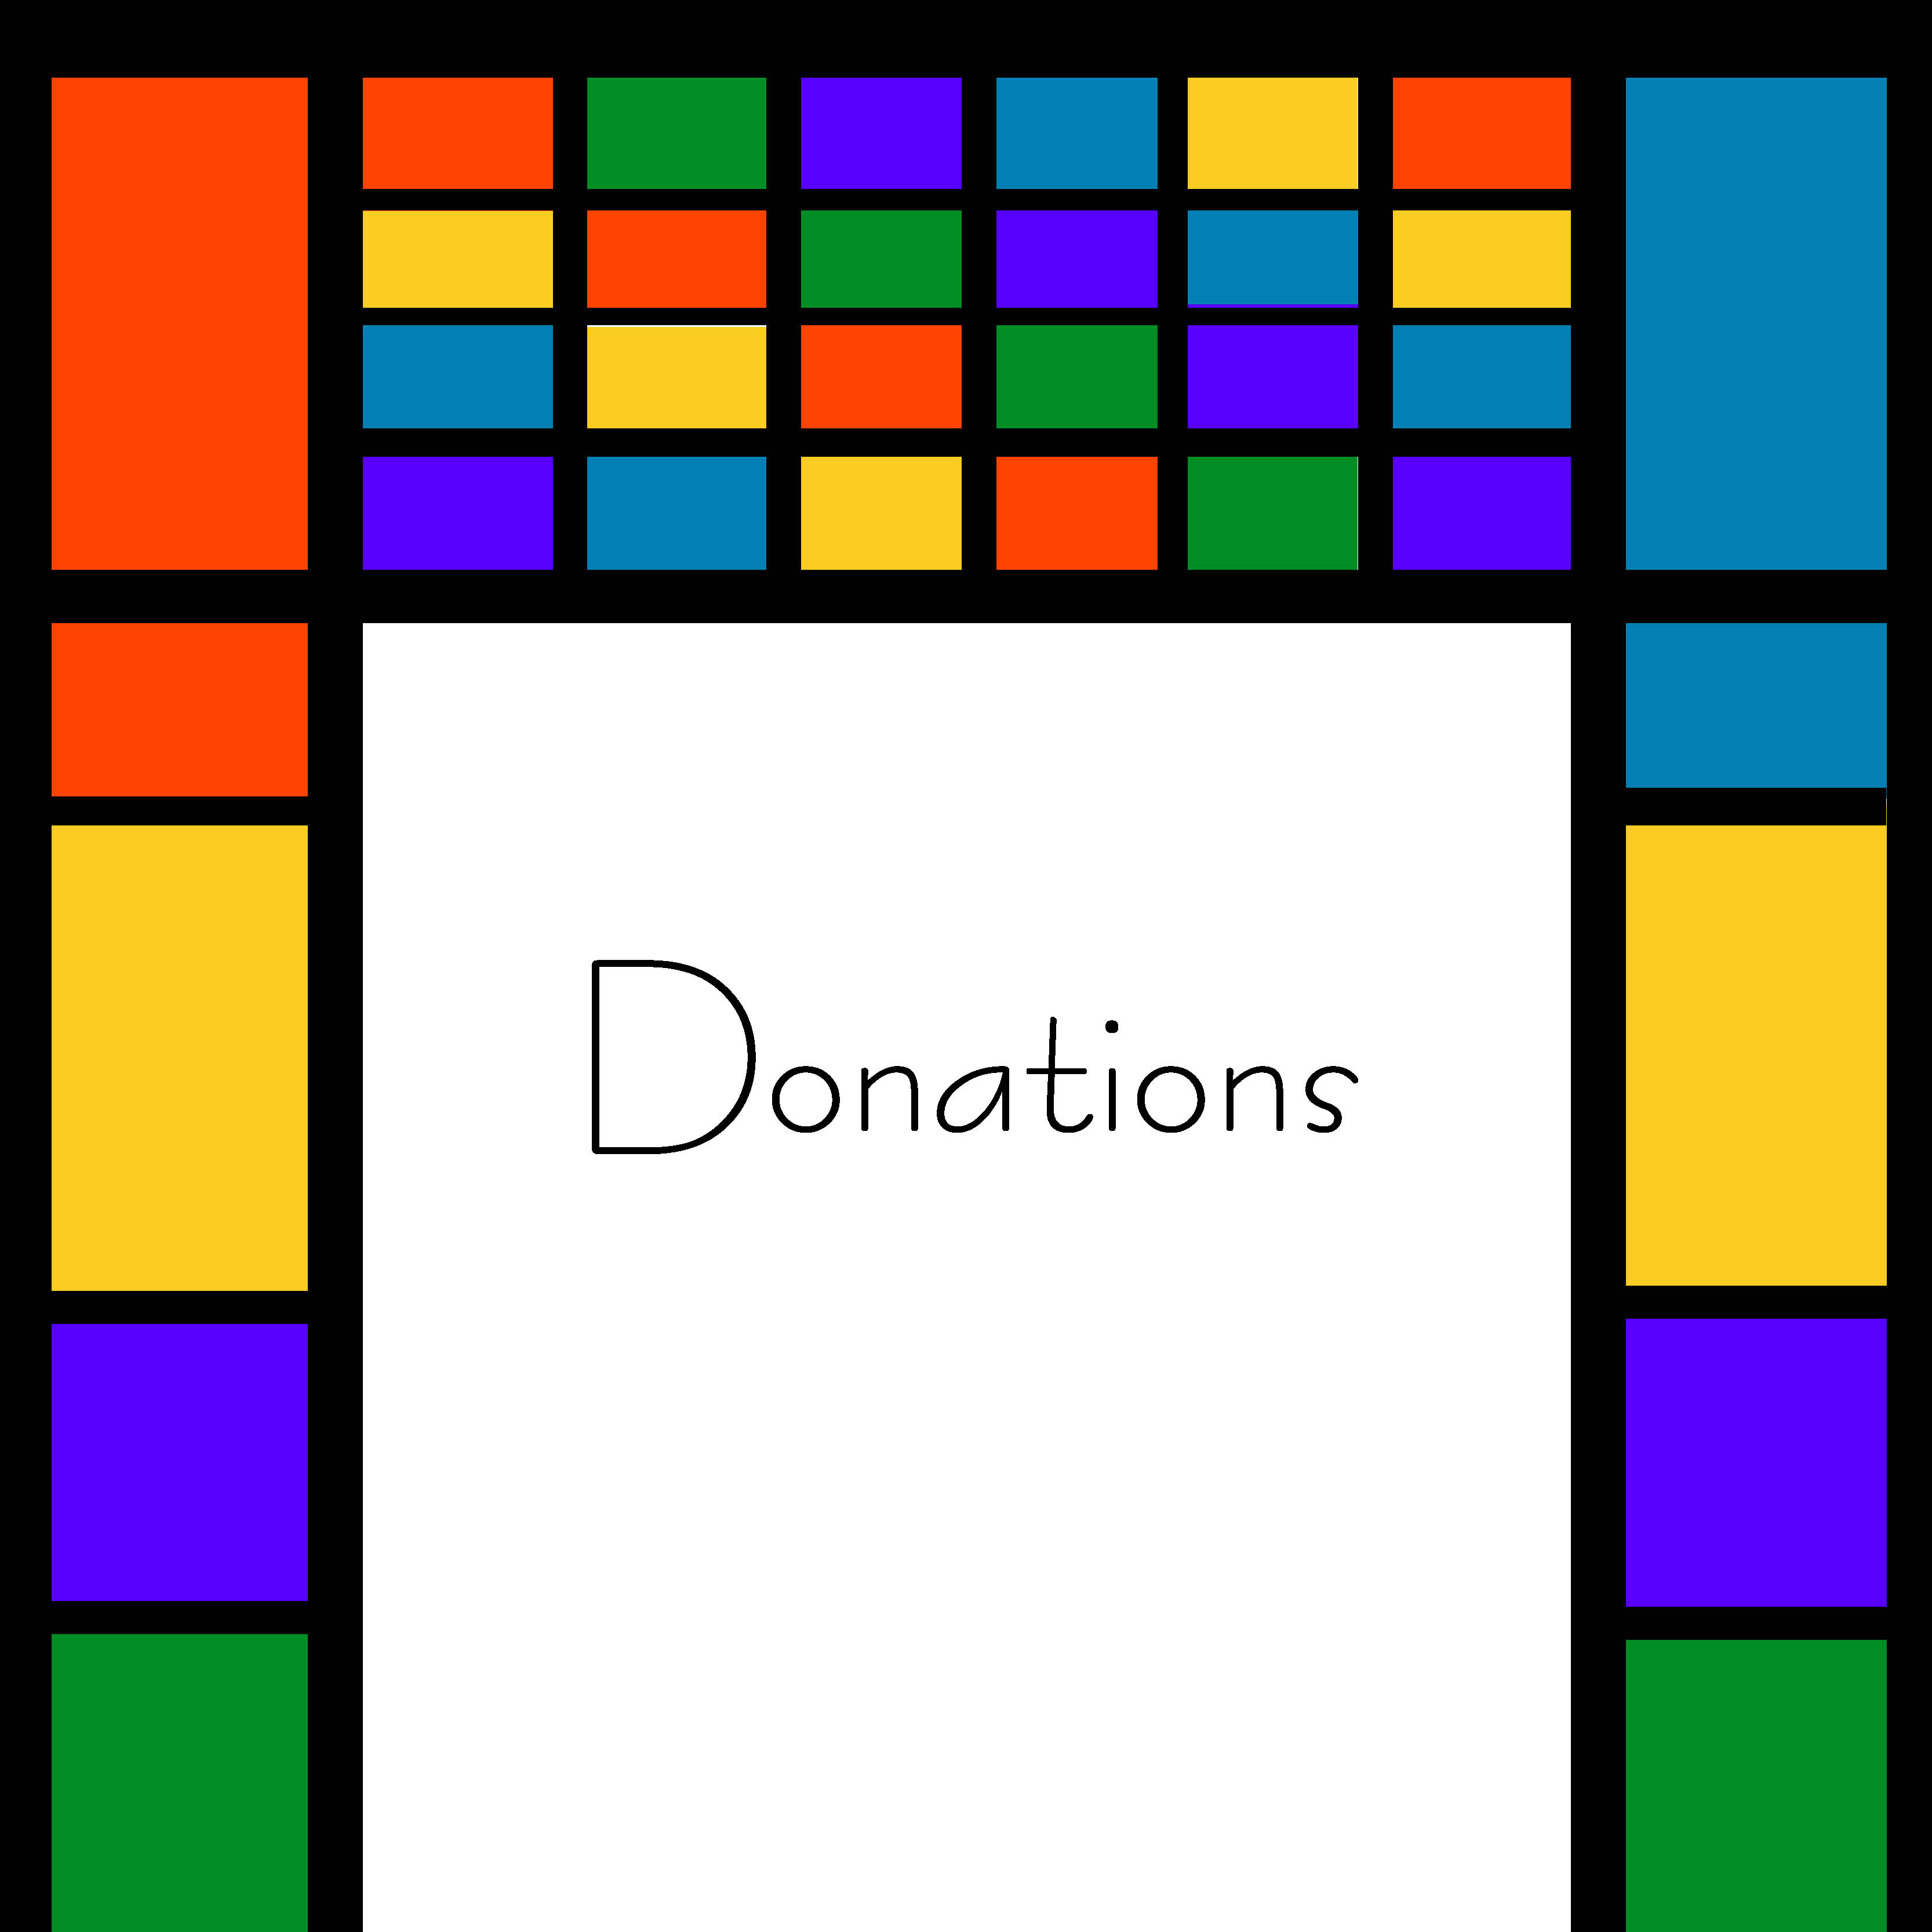 donations website graphic